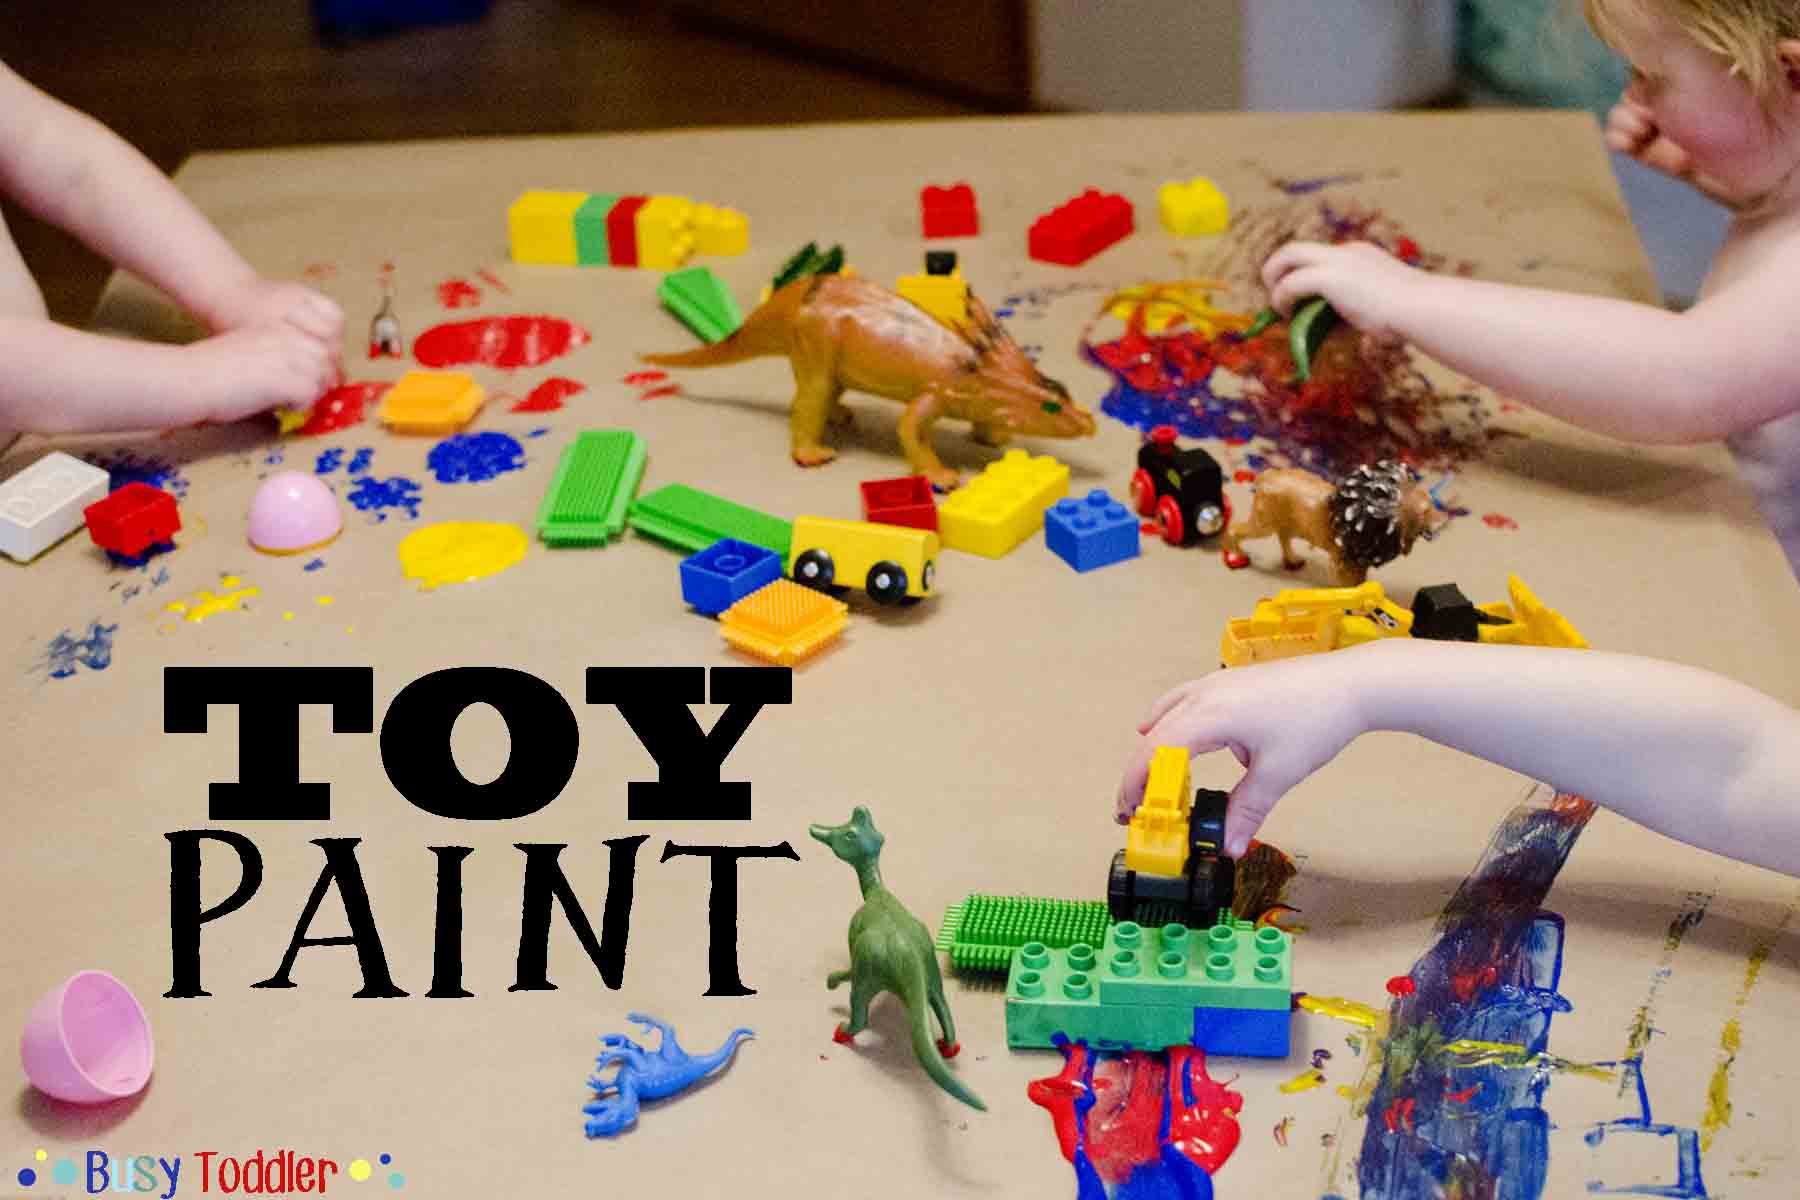 Toy Paint Messy Art Activity